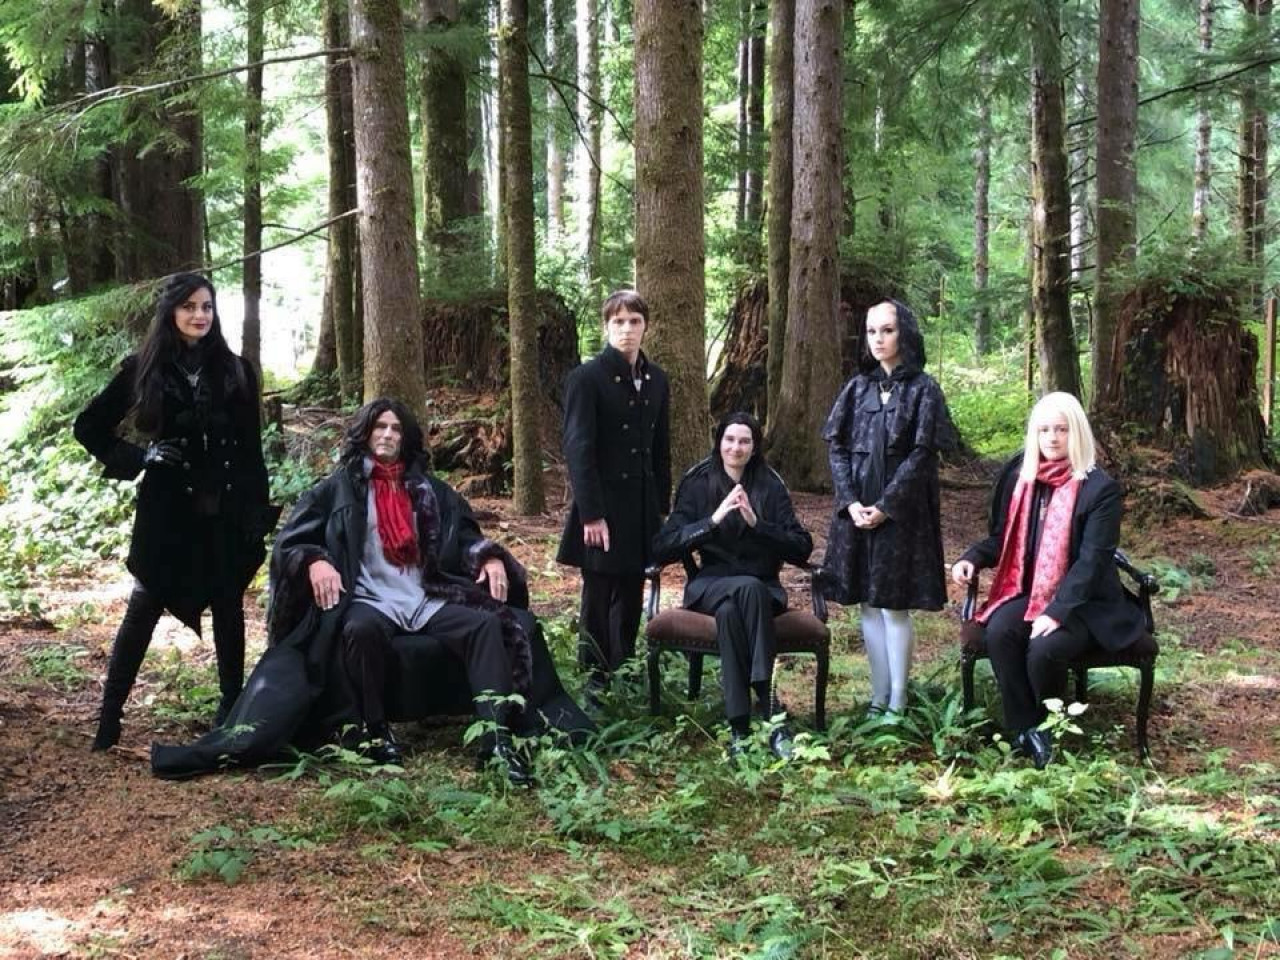 The Volterra Coven at the Forever Twilight in Forks Festival 2018